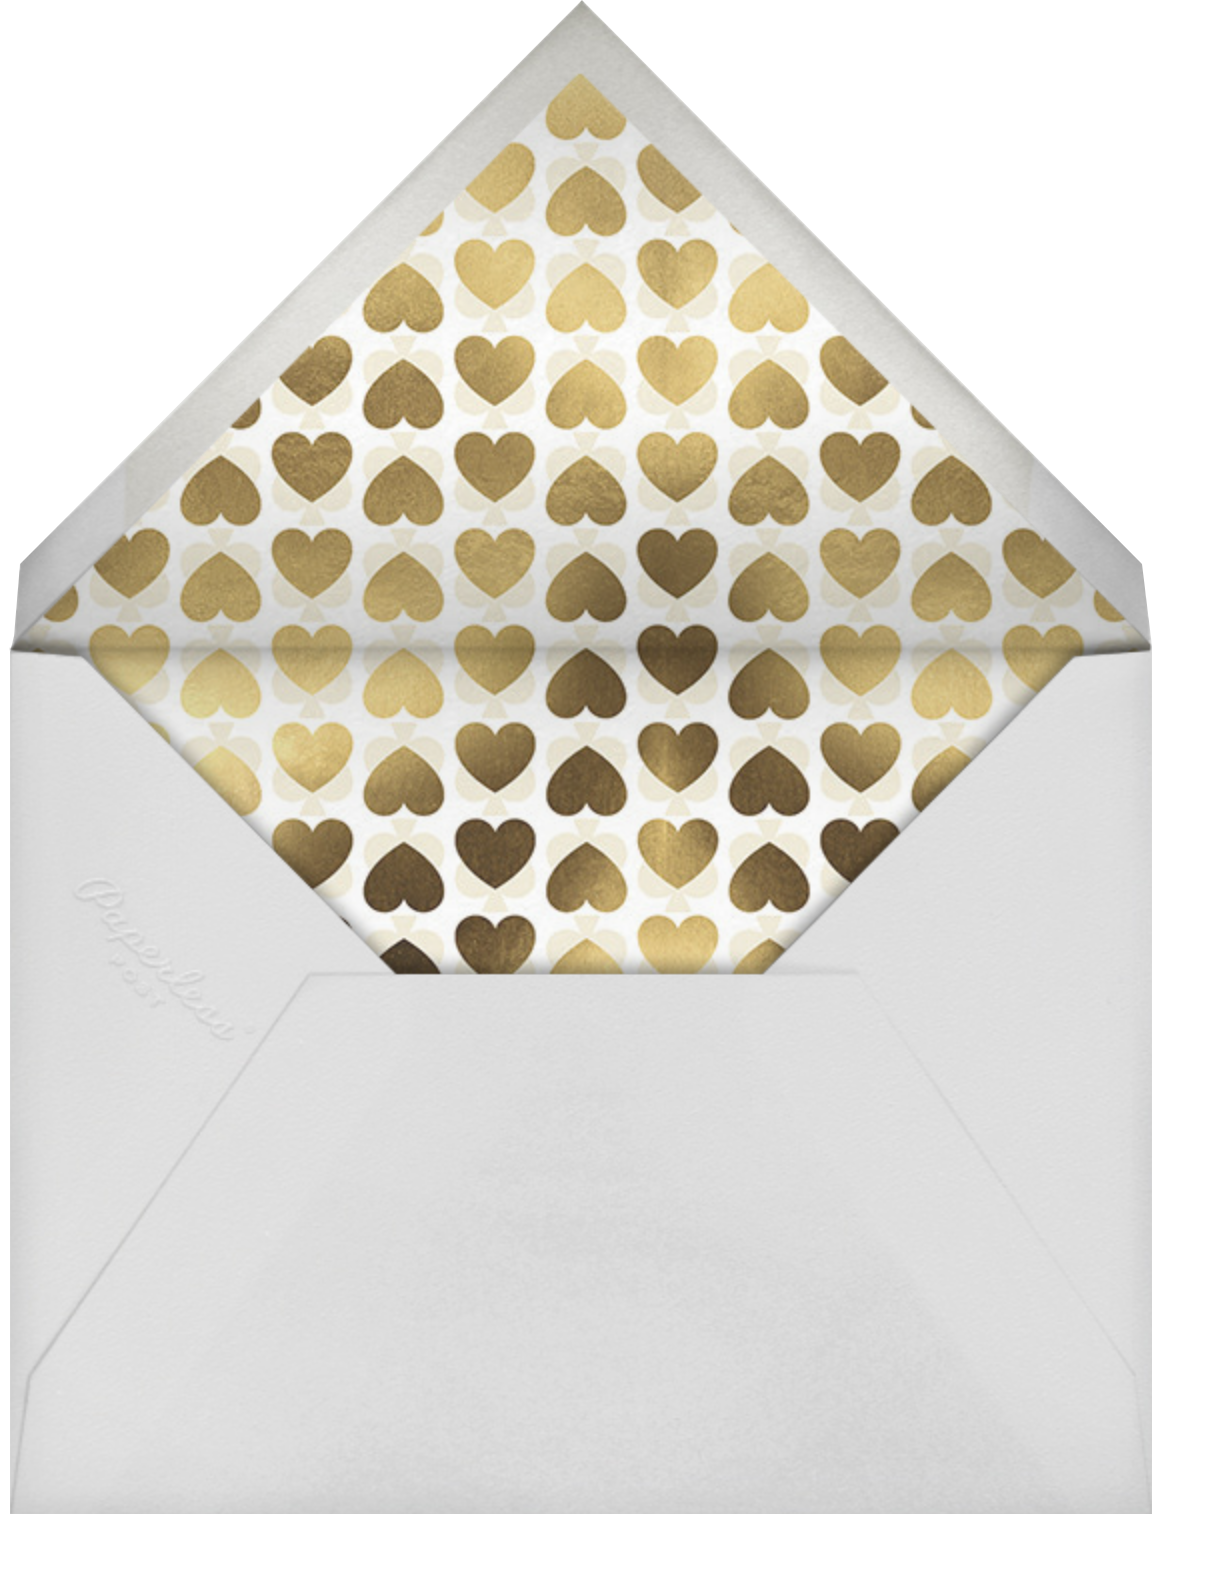 Precious Metal - Meringue - kate spade new york - Bridal shower - envelope back